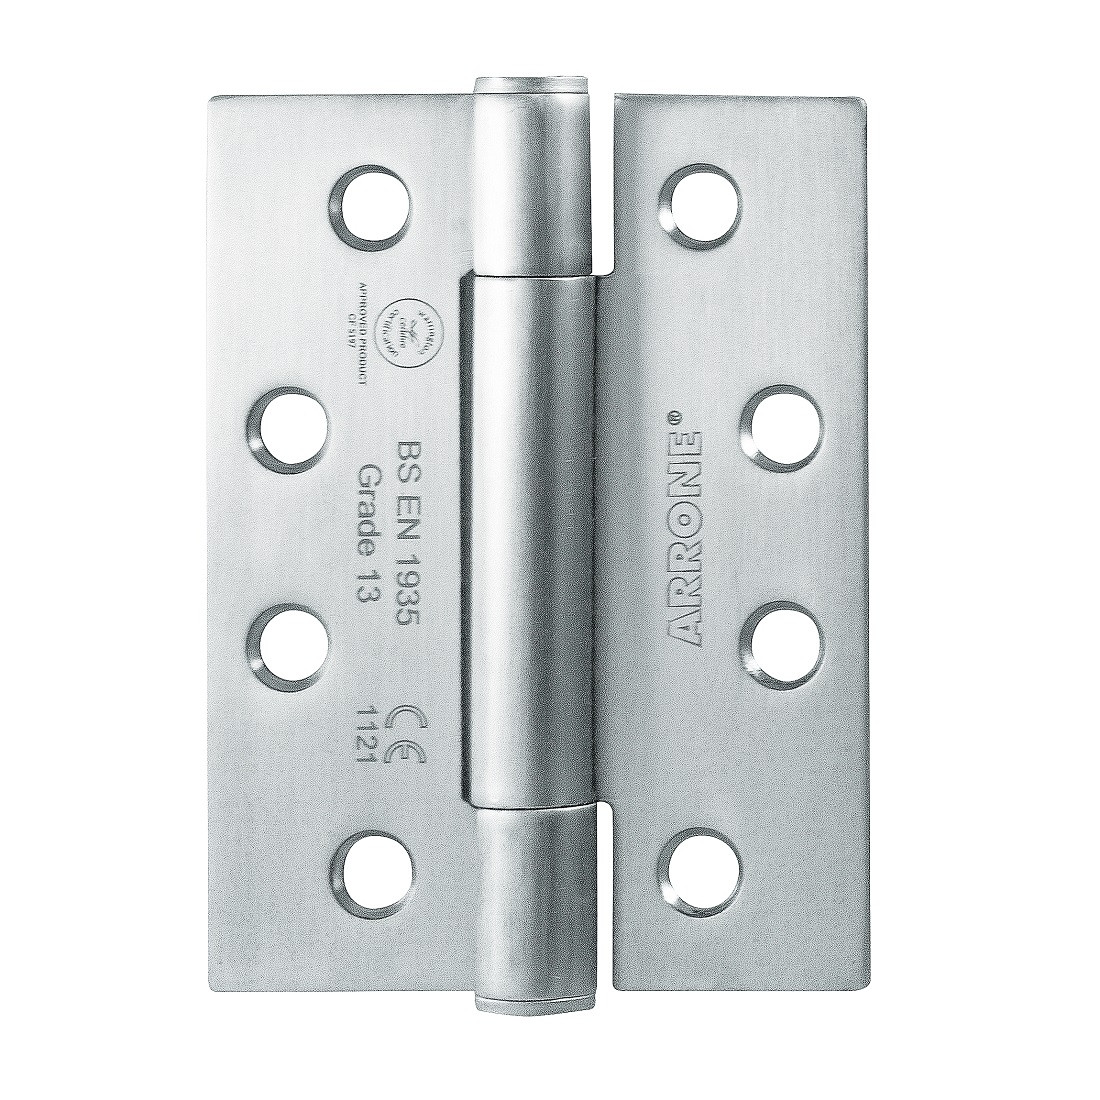 "Arrone 102x76mm (4"" X 3"") Grade 13 Concealed Bearing Butt Hinge with Square Corners (1.5 pair) - SSS"